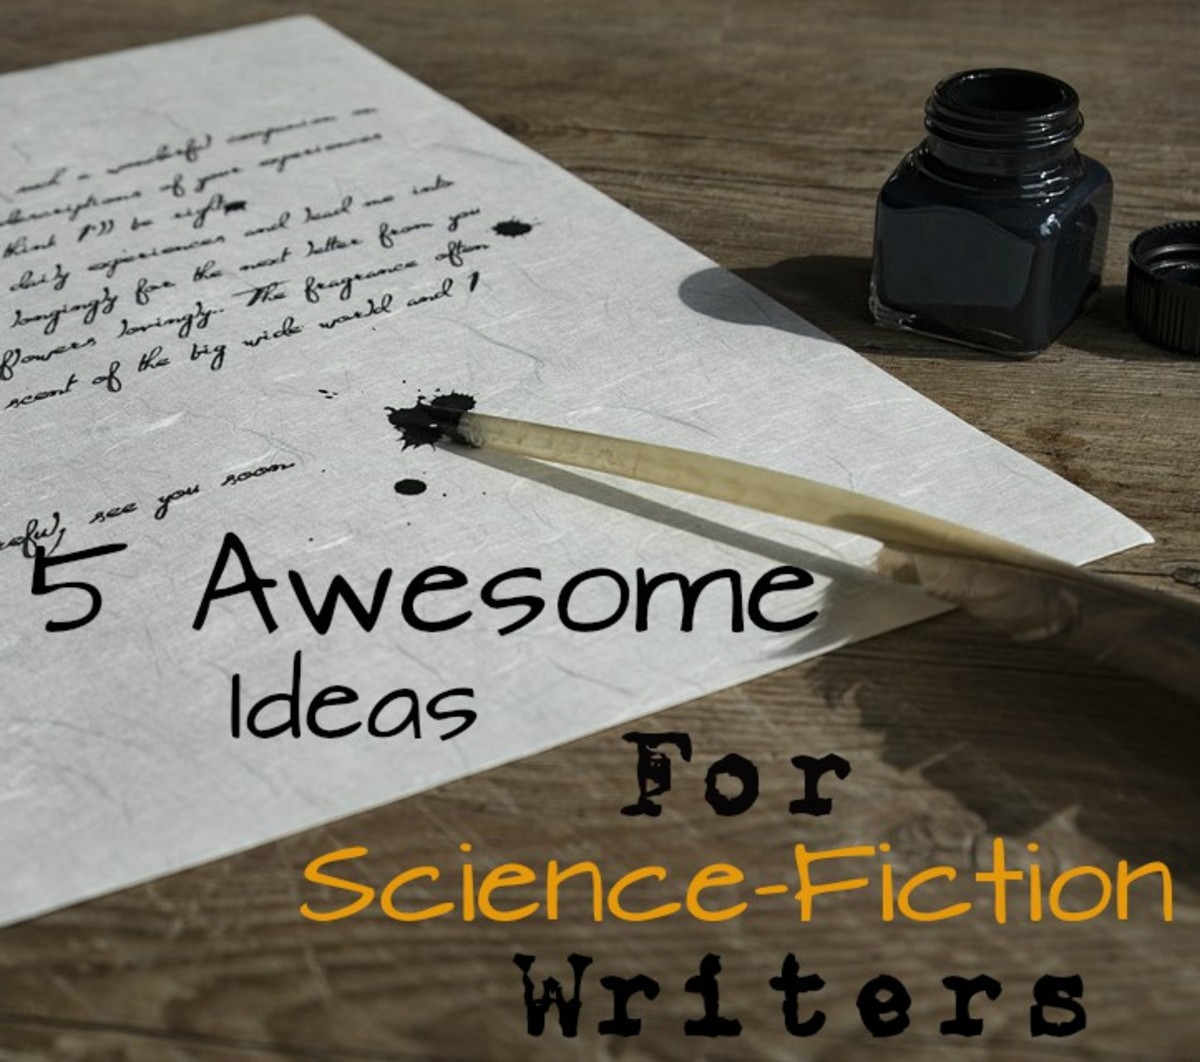 Ideas for Science-Fiction Writers